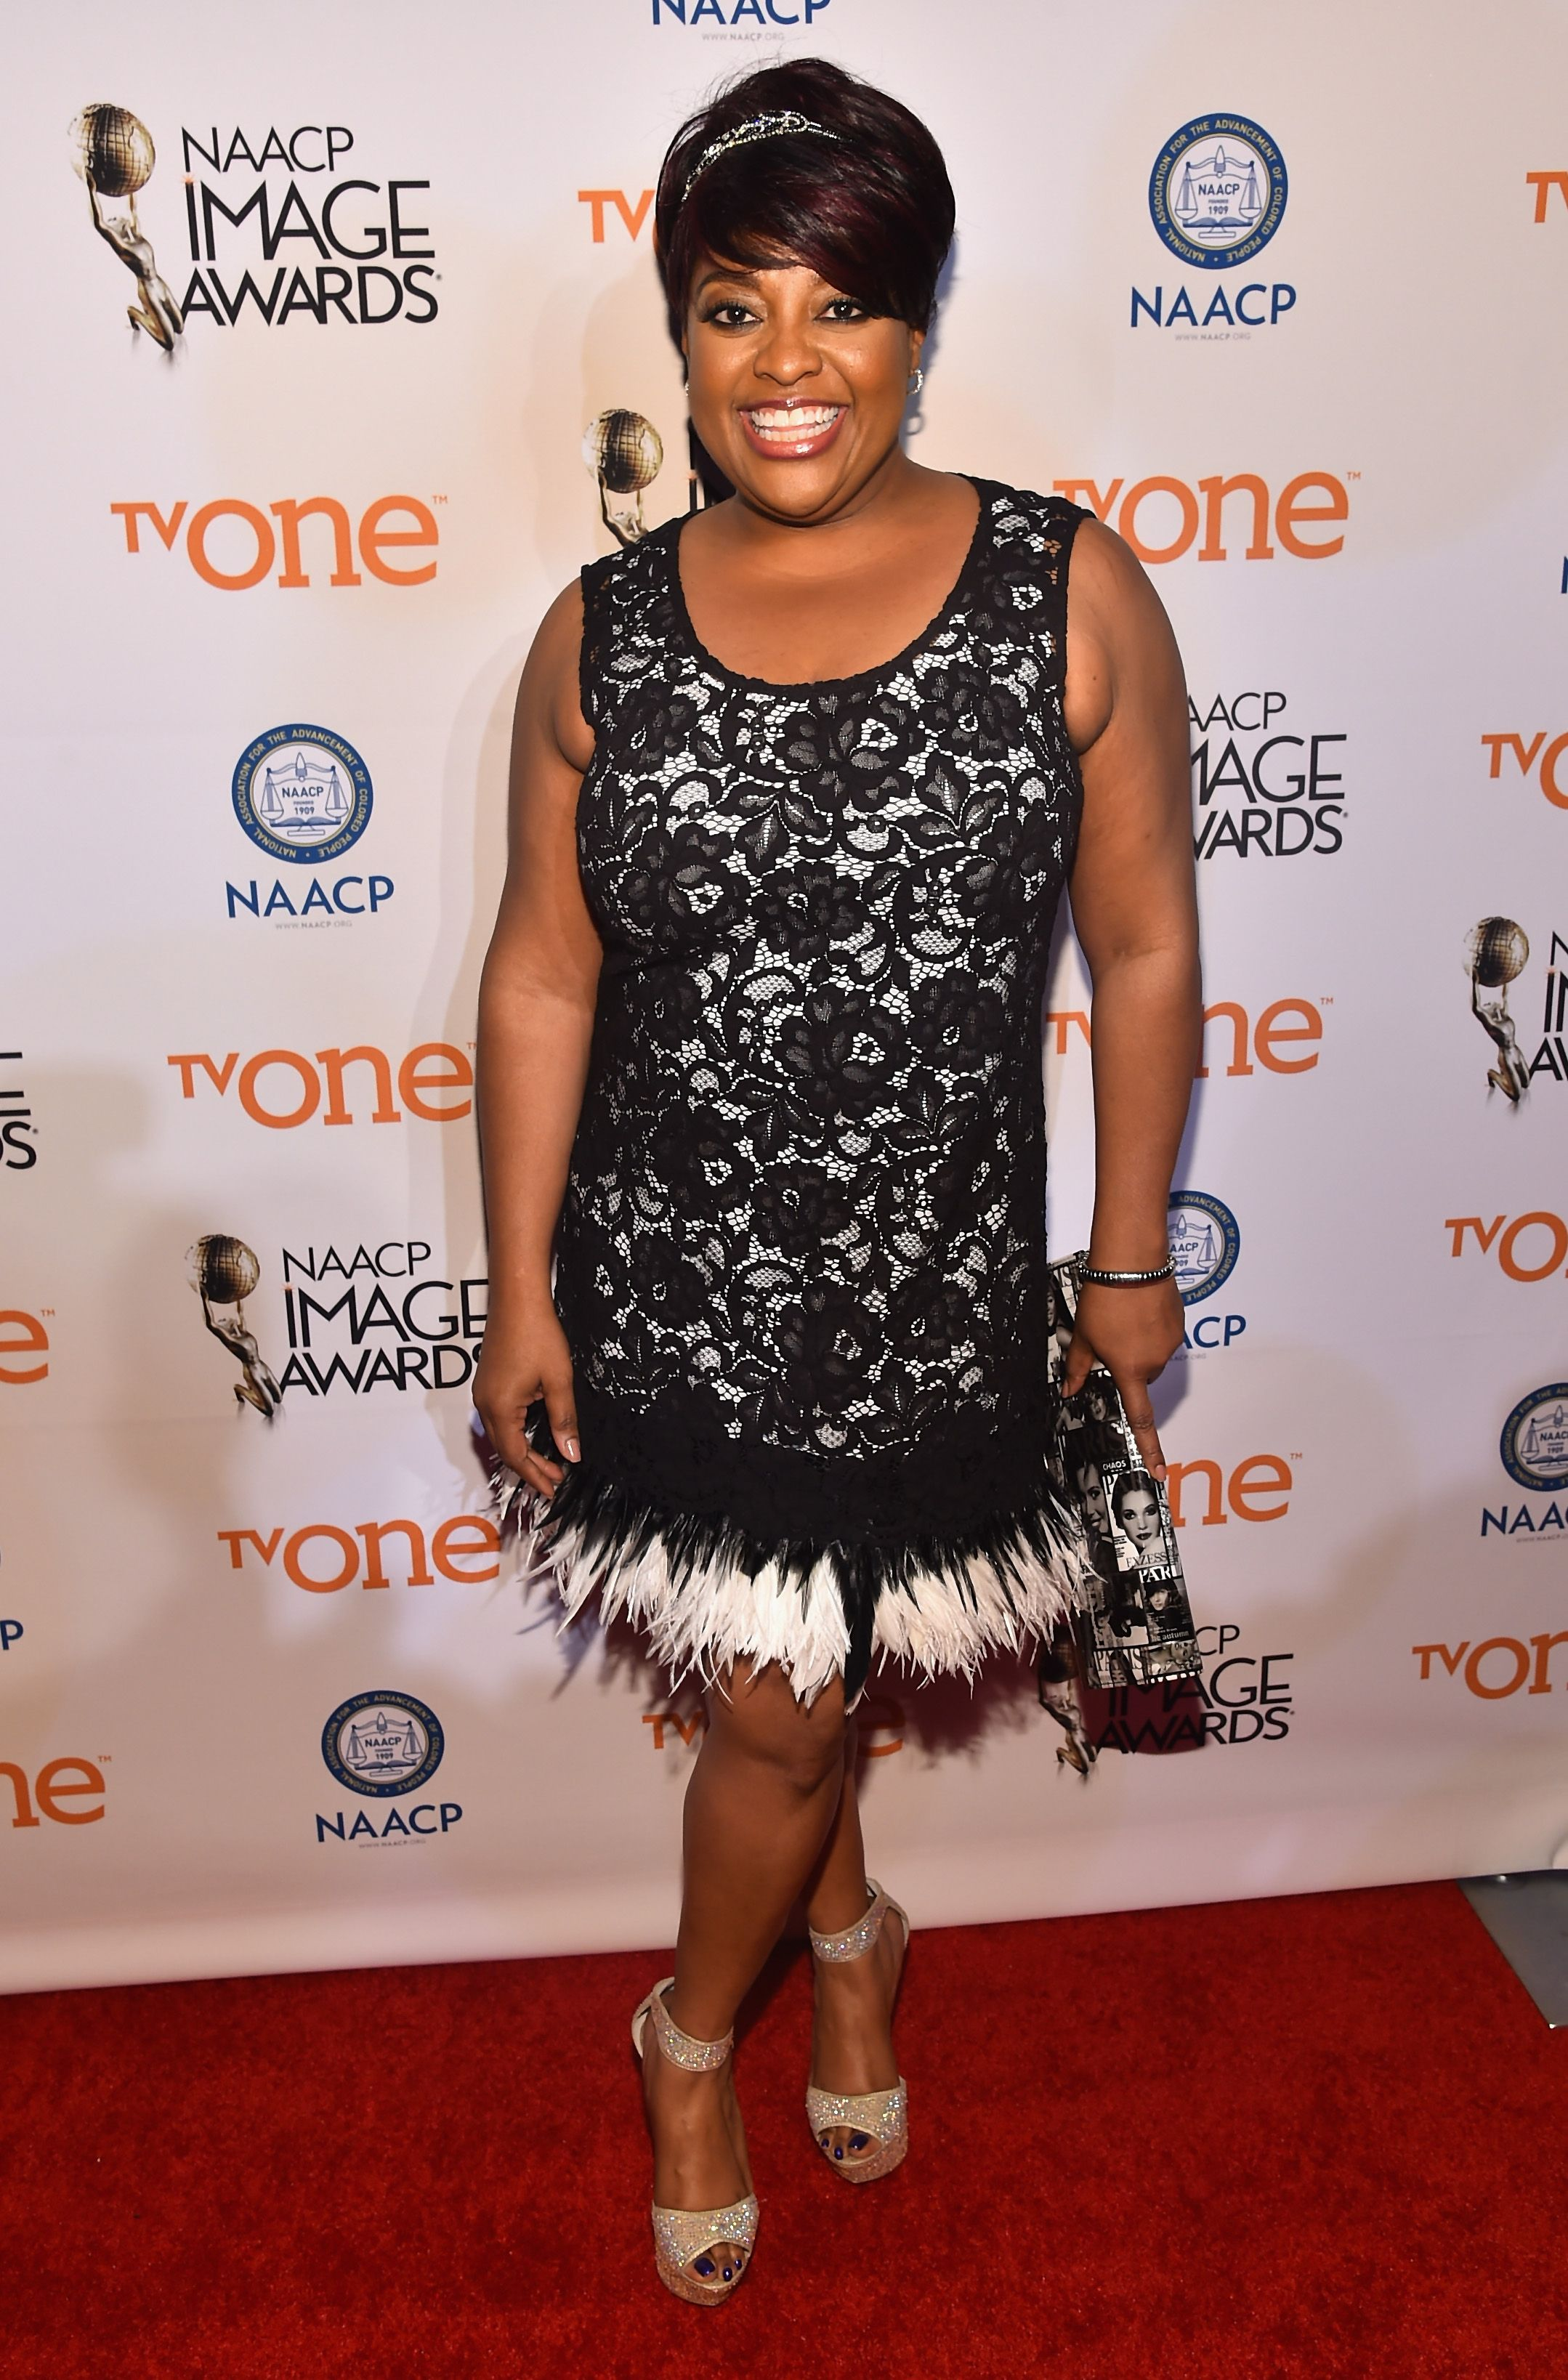 Sherri Shepherd at the NAACP Image Awards on February 5, 2015 in Pasadena. | Photo: Getty Images